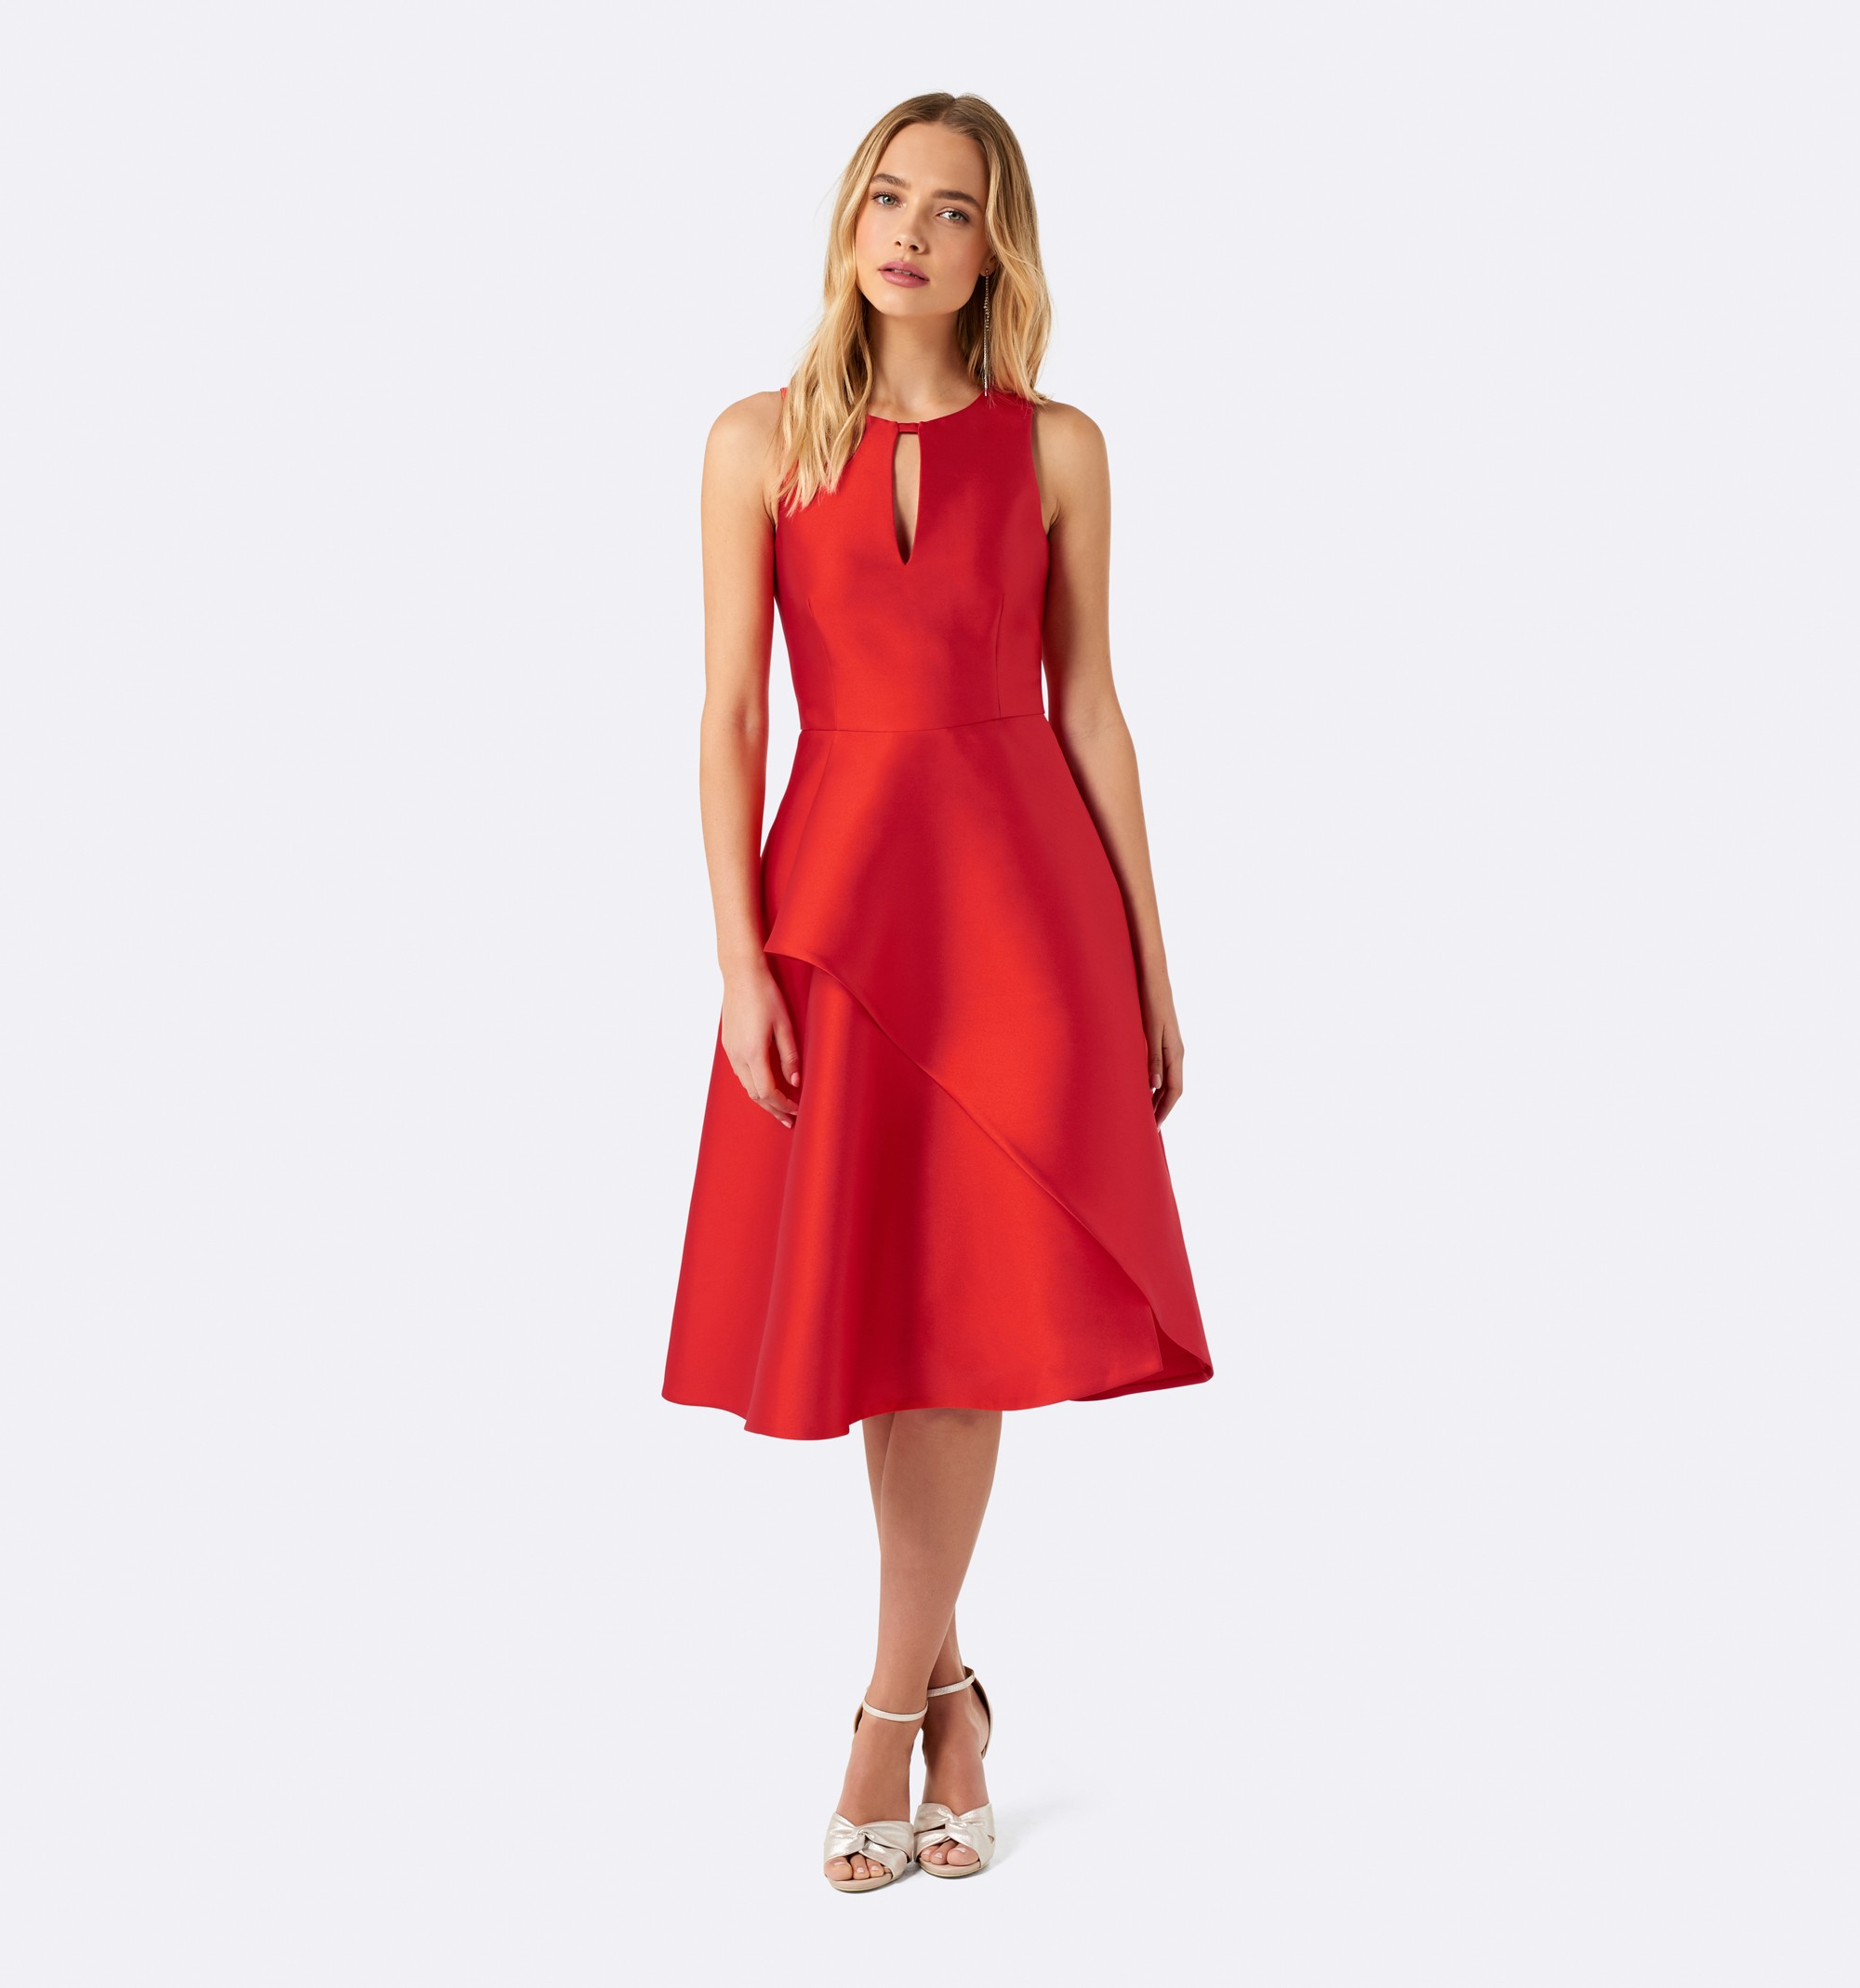 3 best red dresses forever new structured dress